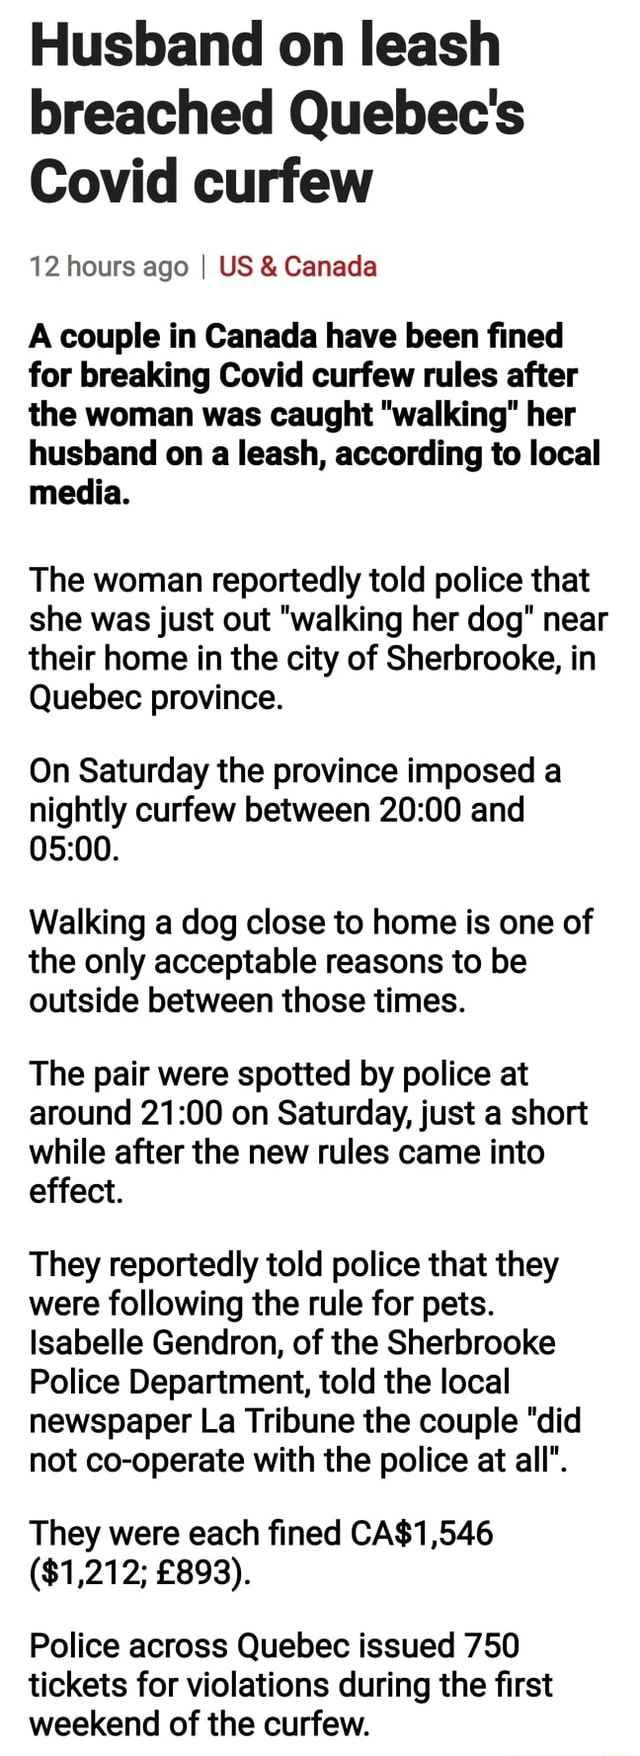 Husband on leash breached Quebec's Covid curfew 12 hours ago I US  and  Canada A couple in Canada have been fined for breaking Covid curfew rules after the woman was caught walking her husband on a leash, according to local media. The woman reportedly told police that she was just out walking her dog near their home in the city of Sherbrooke, in Quebec province. On Saturday the province imposed a nightly curfew between and Walking a dog close to home is one of the only acceptable reasons to be outside between those times. The pair were spotted by police at around on Saturday, just a short while after the new rules came into effect. They reportedly told police that they were following the rule for pets. Isabelle Gendron, of the Sherbrooke Police Department, told the local newspaper La Tribu